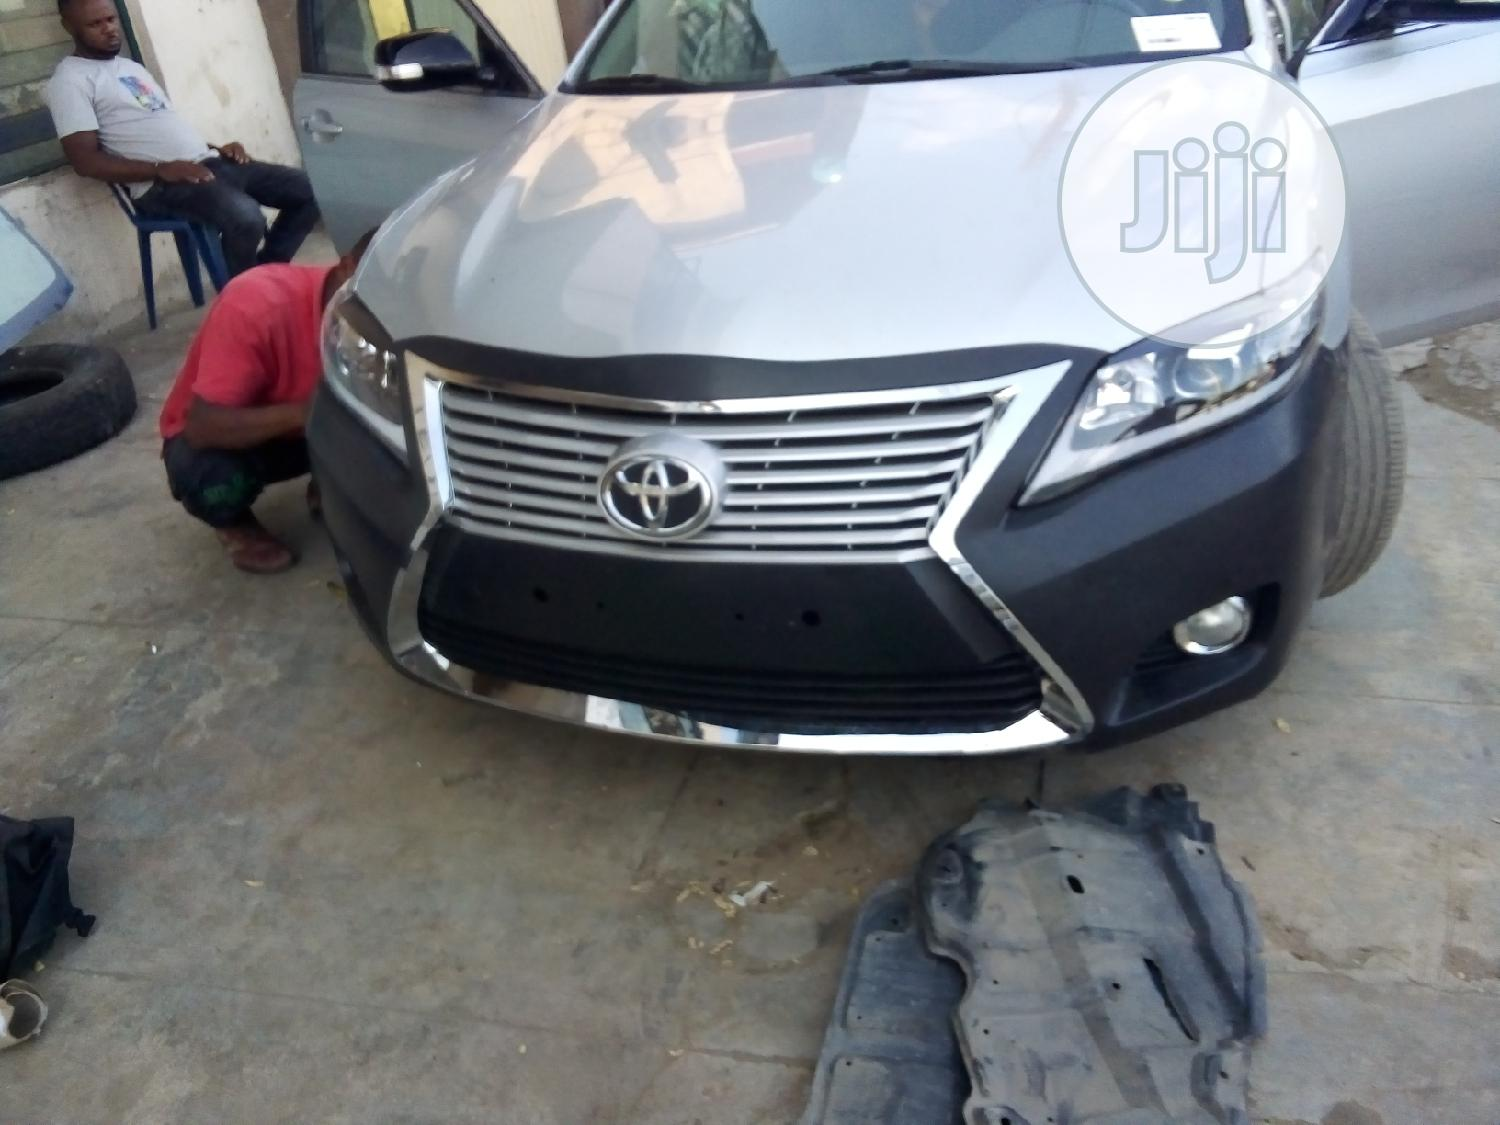 Toyota Camry Upgrade To Lexus Face | Vehicle Parts & Accessories for sale in Mushin, Lagos State, Nigeria